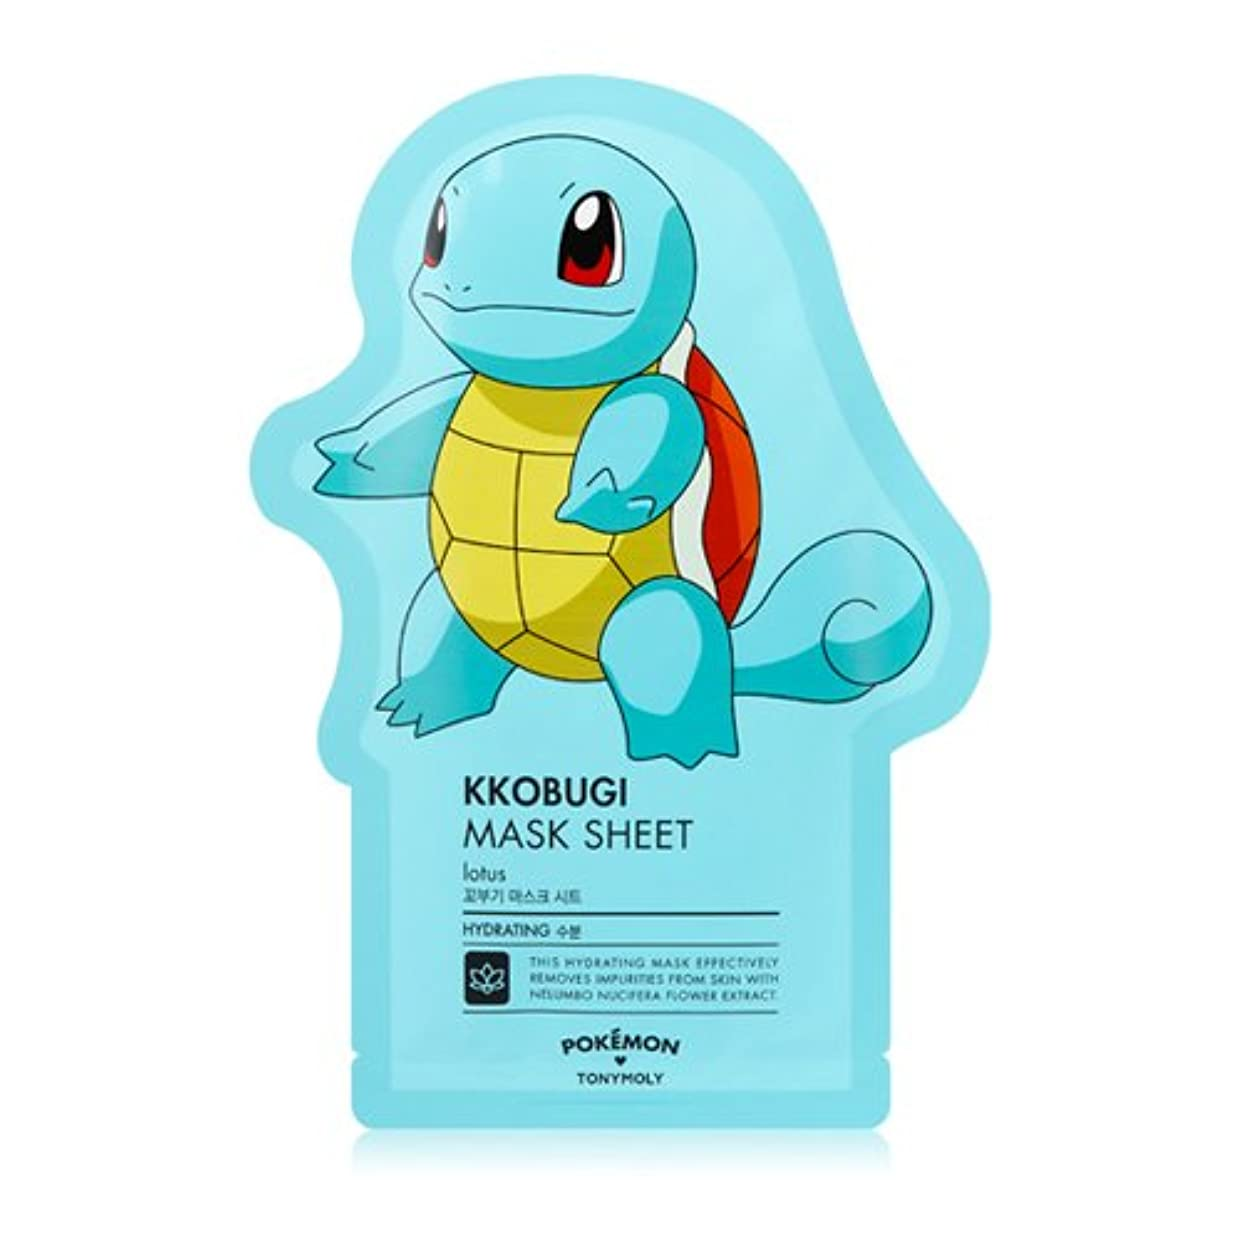 絶対に丘分TONYMOLY x Pokemon Squirtle/Kkobugi Mask Sheet (並行輸入品)